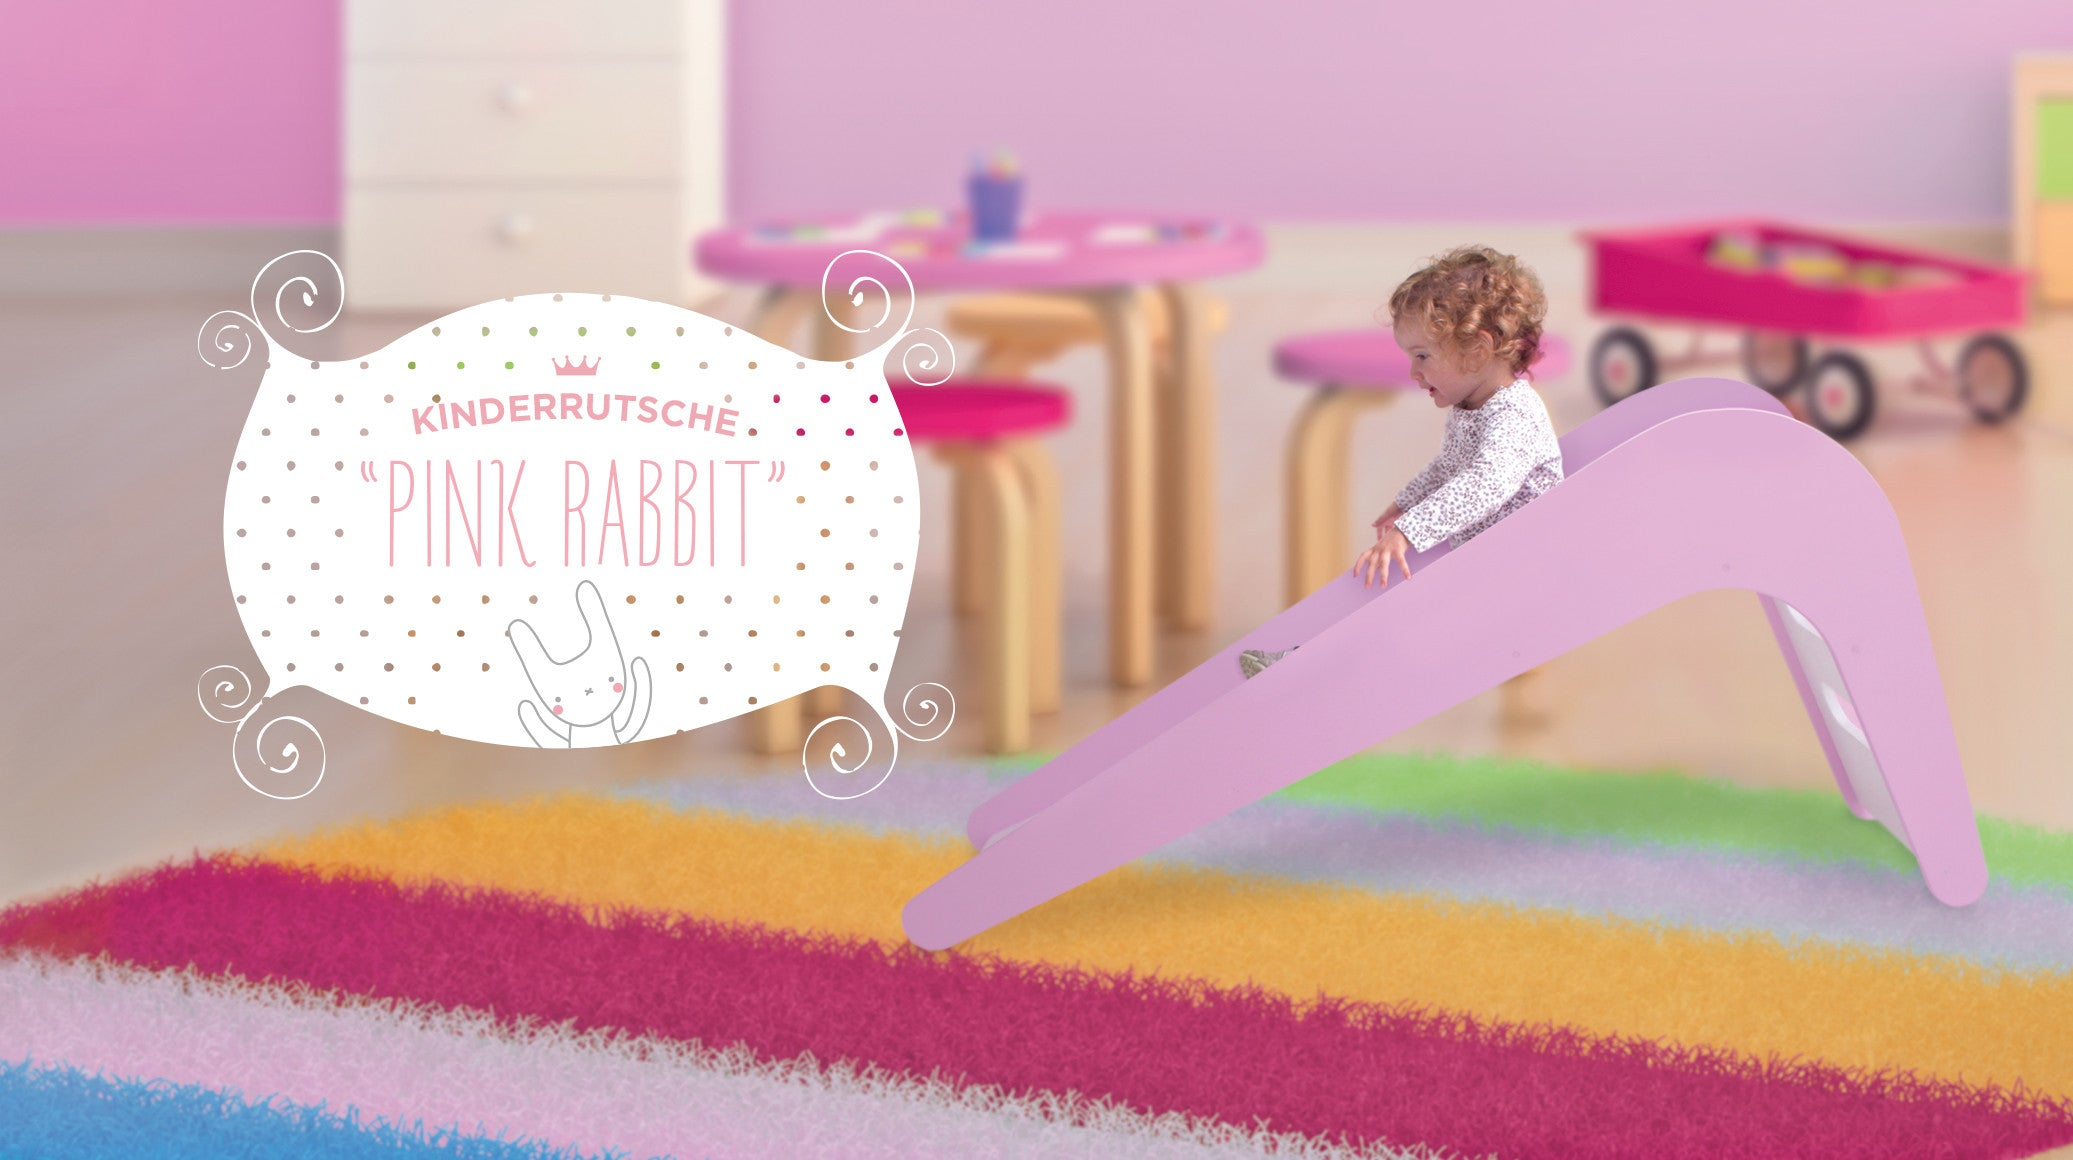 Children's Slide - Pink Rabbit